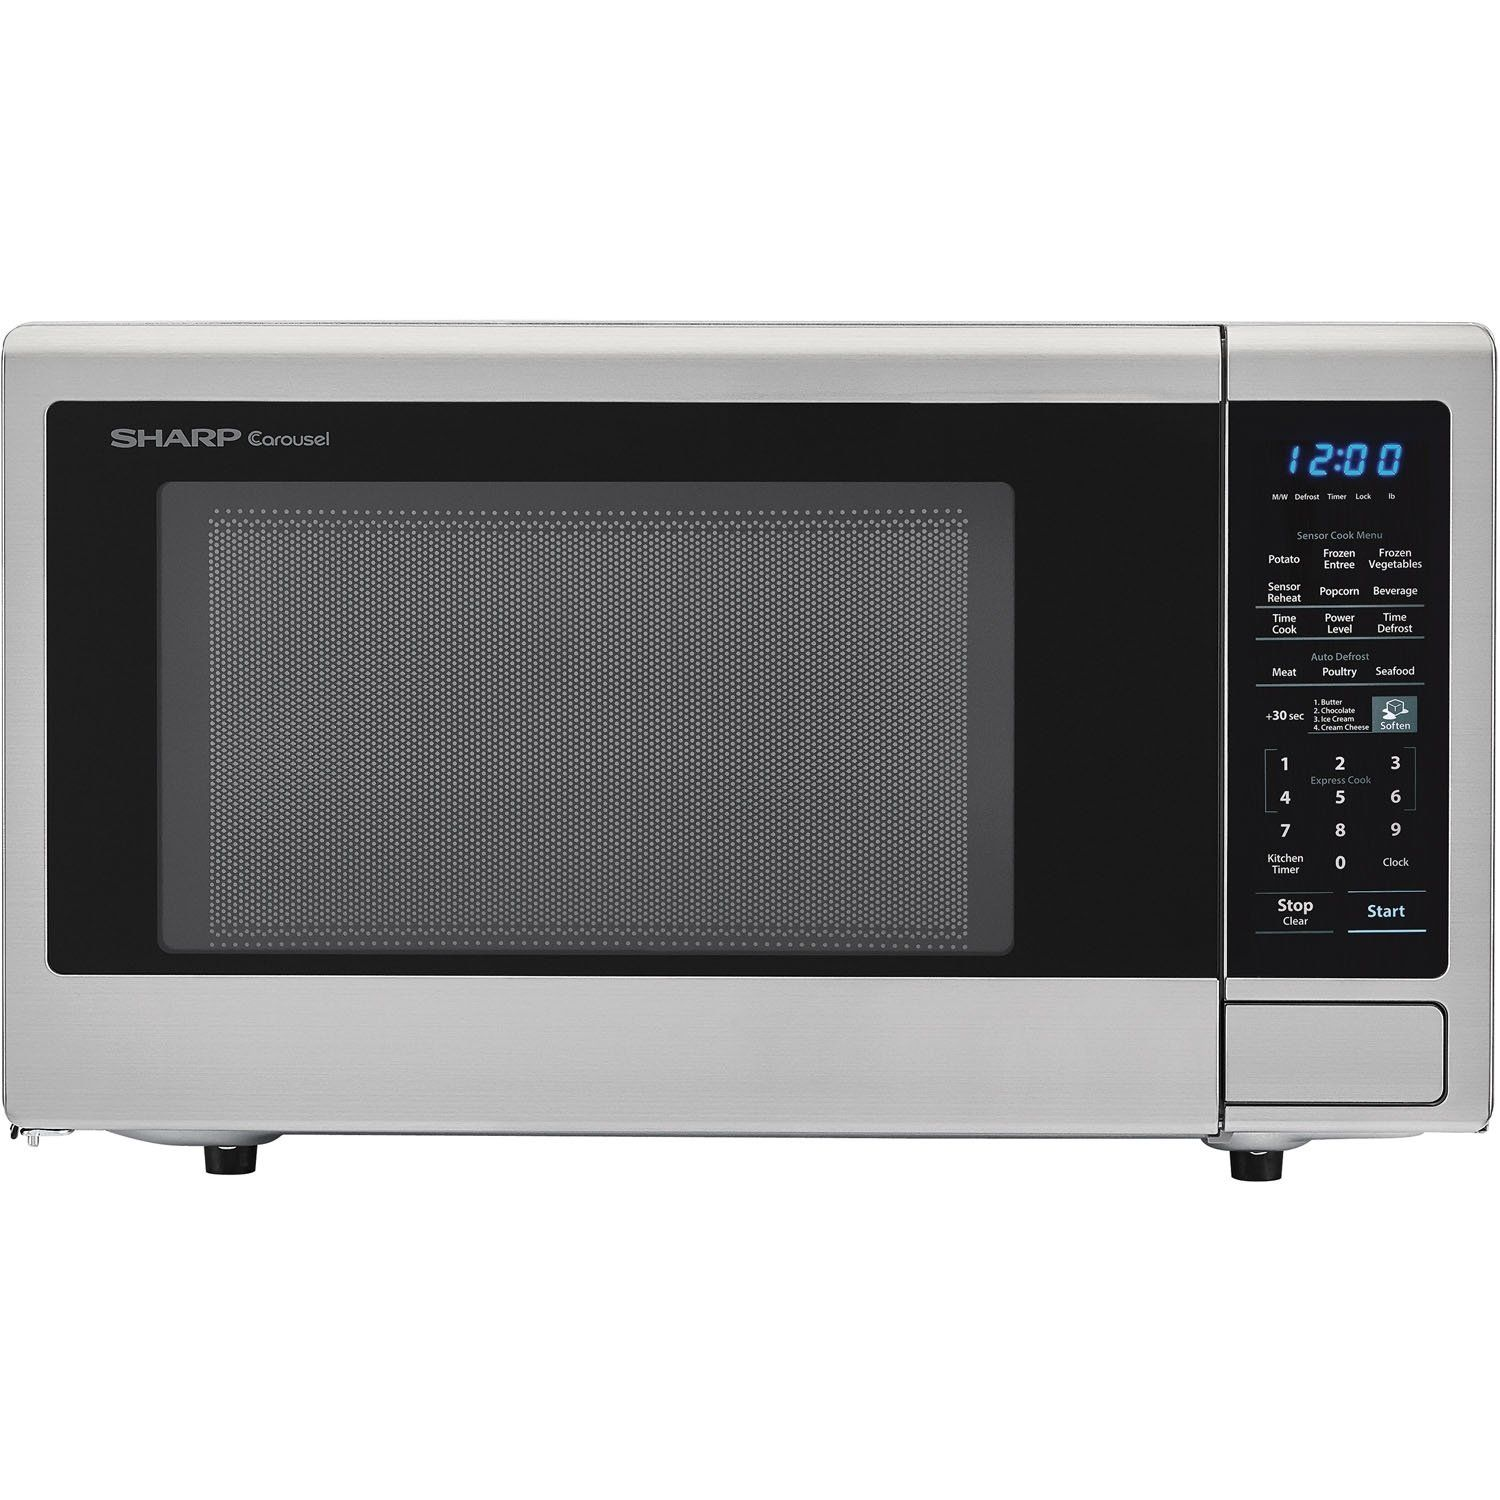 Sharp Carousel 1 8 Cu Ft 1100w Countertop Microwave Oven In